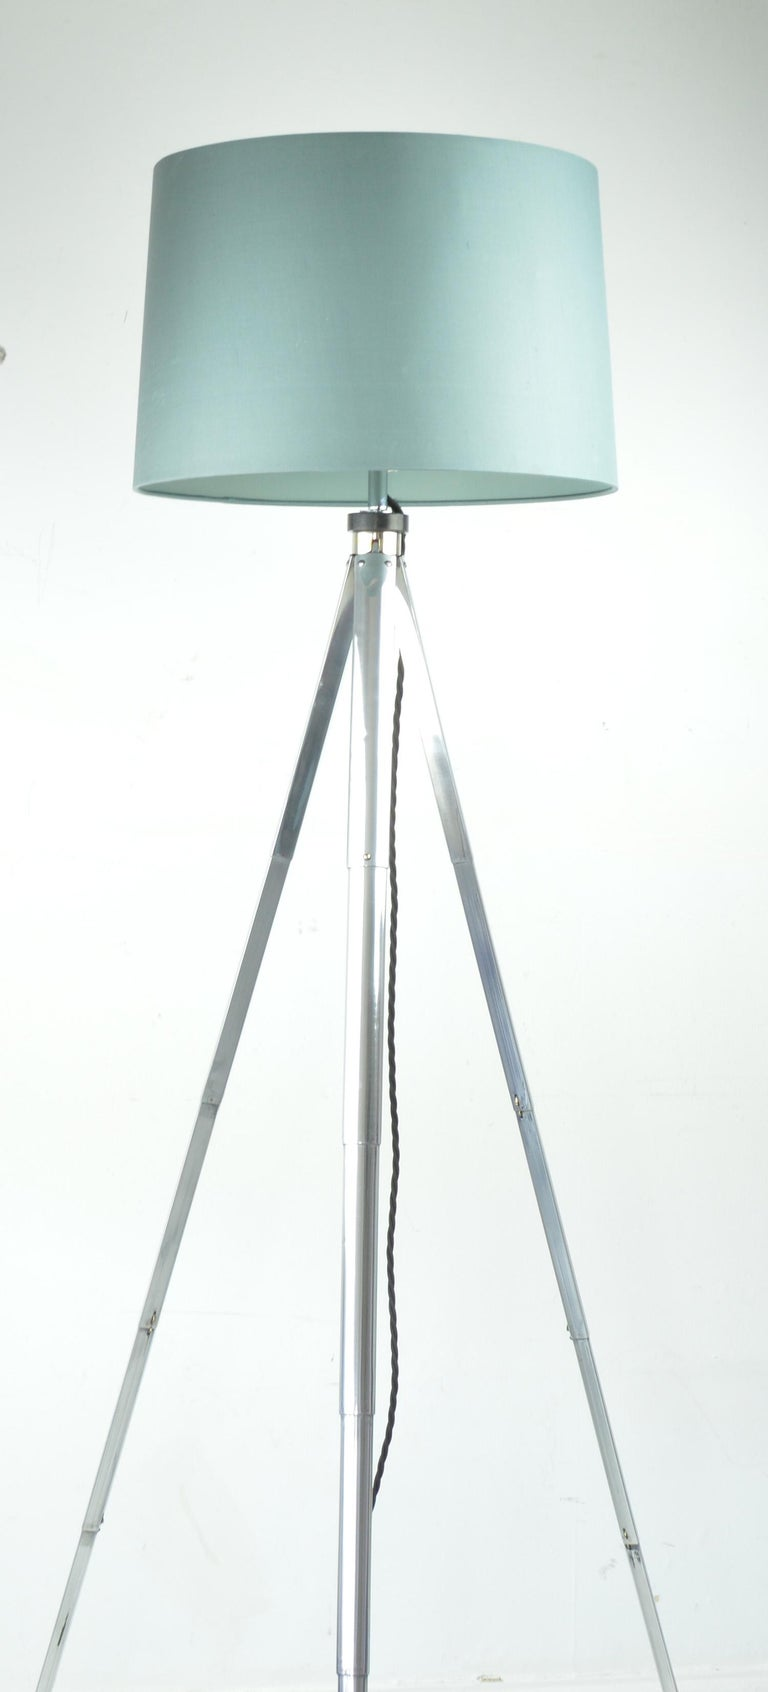 Industrial Vintage Tripod Floor Light, English, Mid-20th Century For Sale